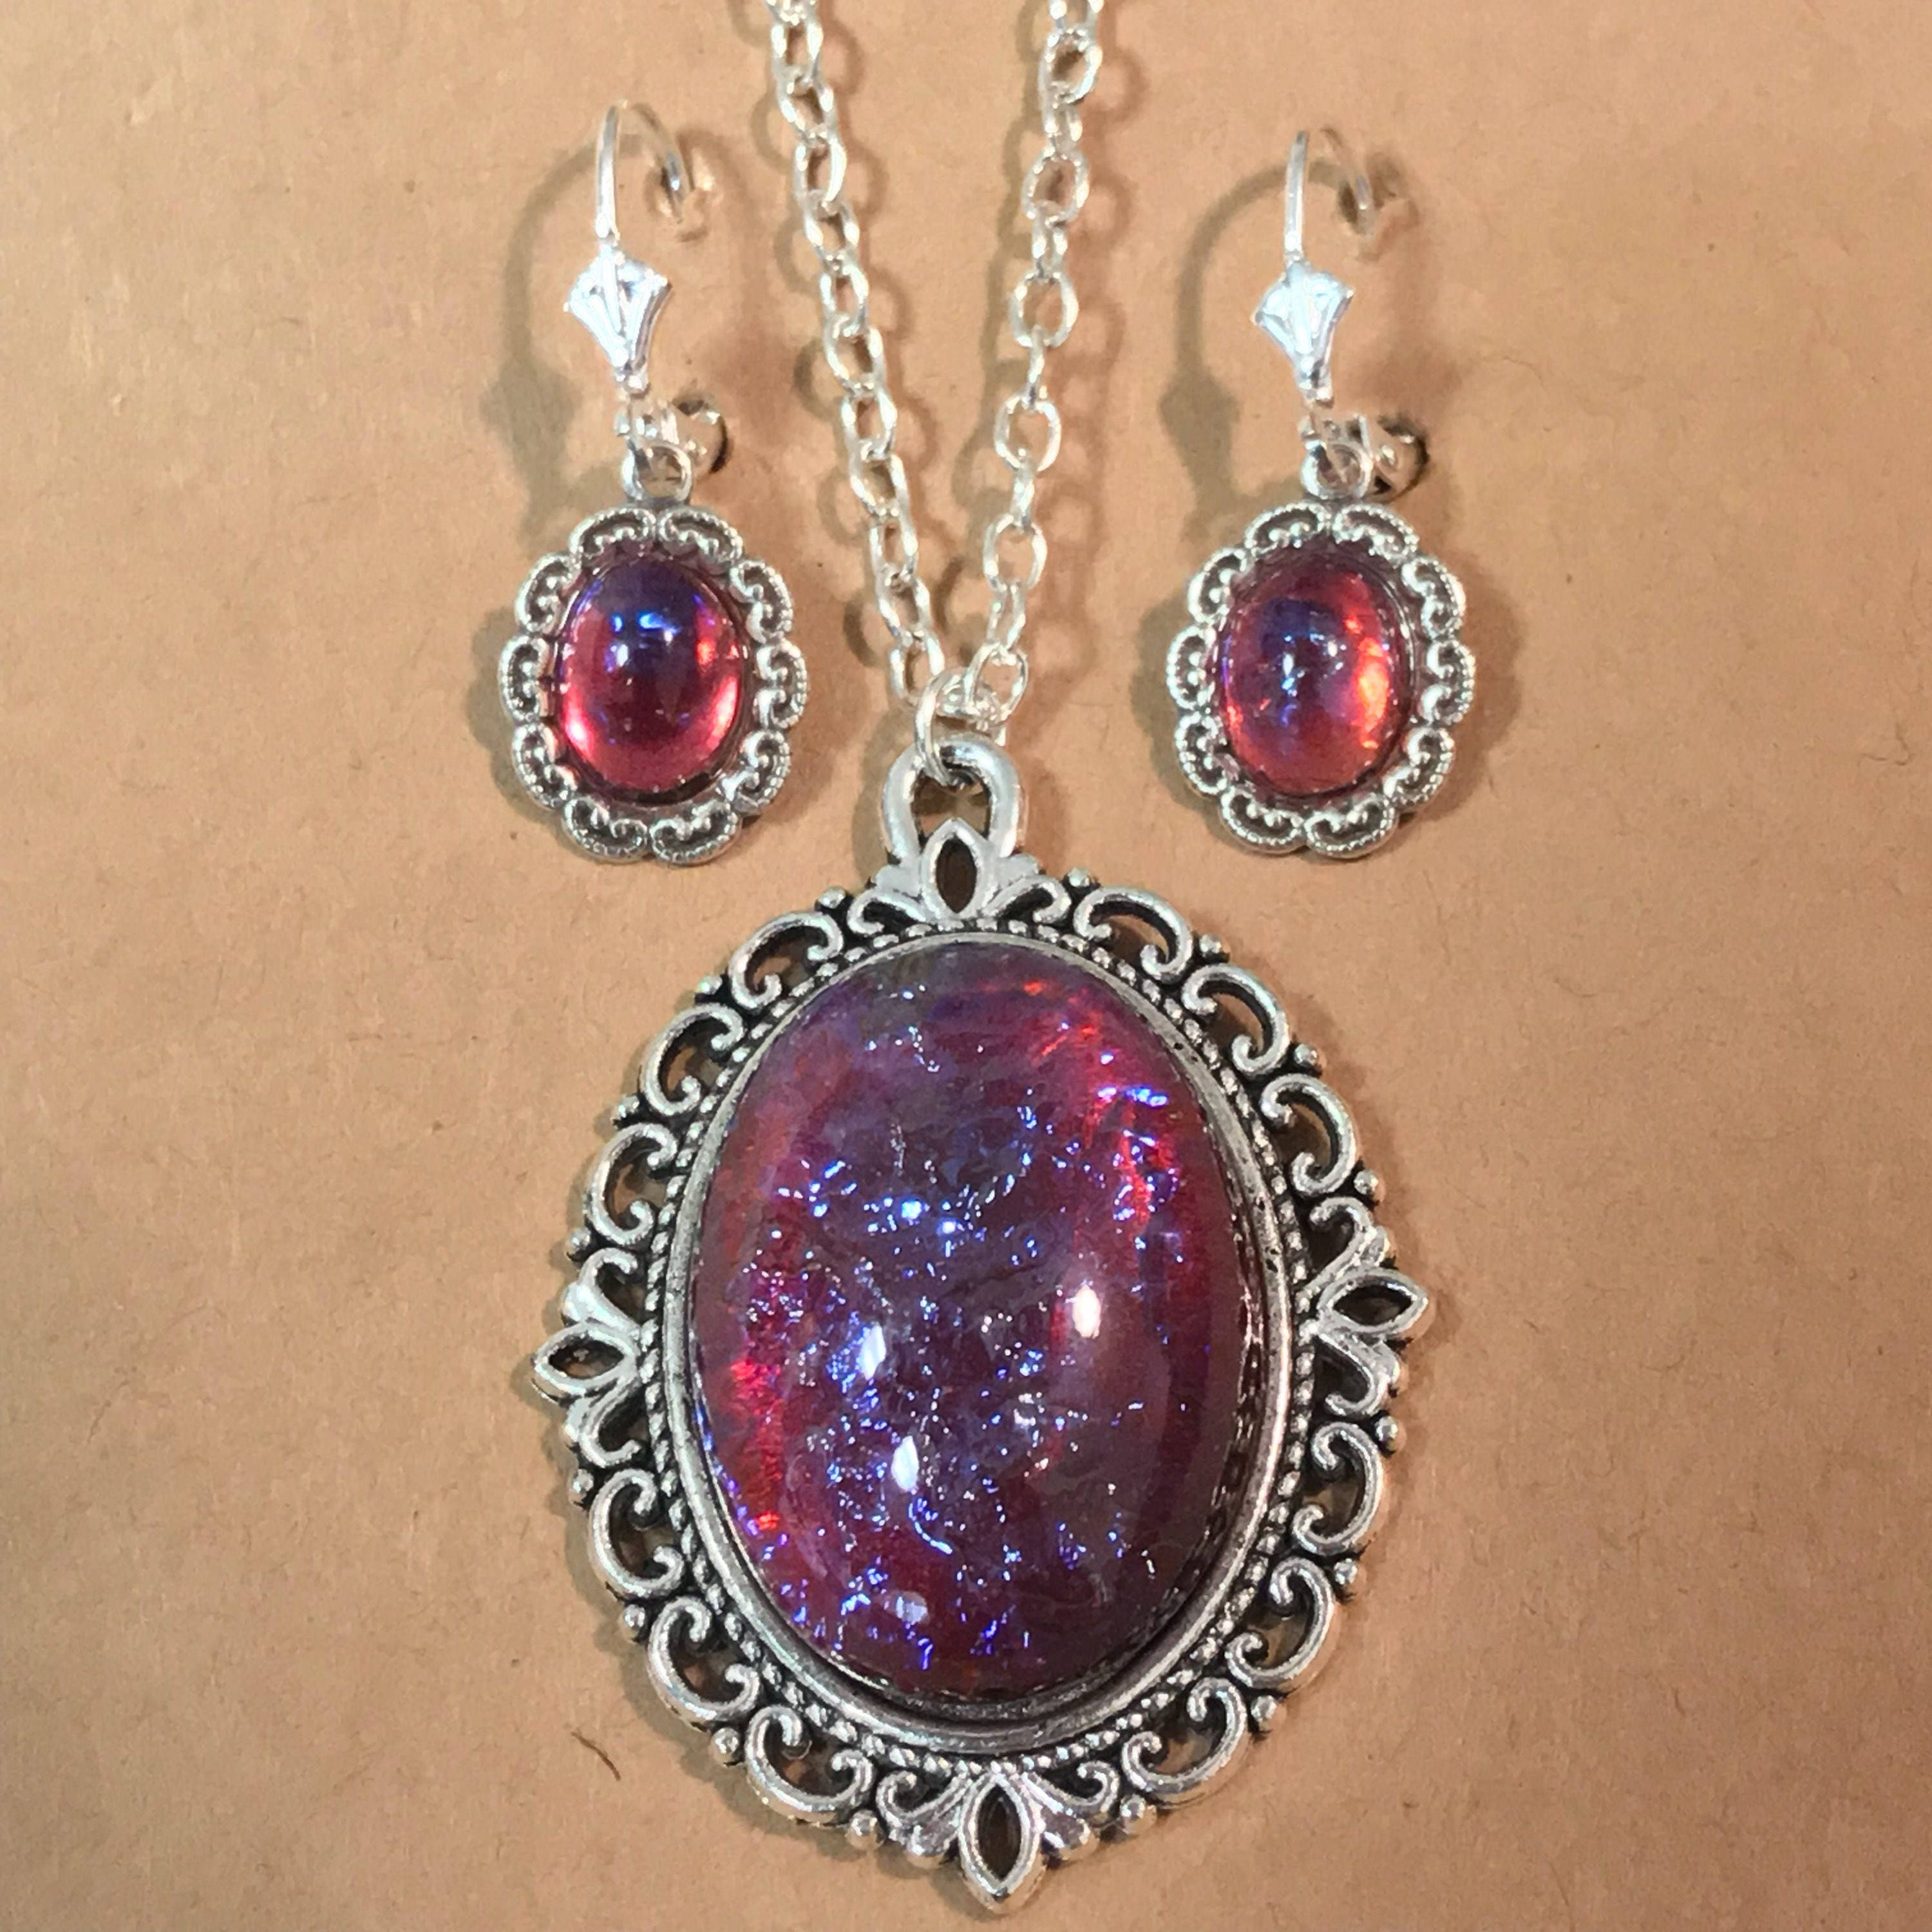 Large opal necklacemexican fire opalglass pendantopal earrings large opal necklacemexican fire opalglass pendantopal earringsred and blue silver necklace aloadofball Choice Image